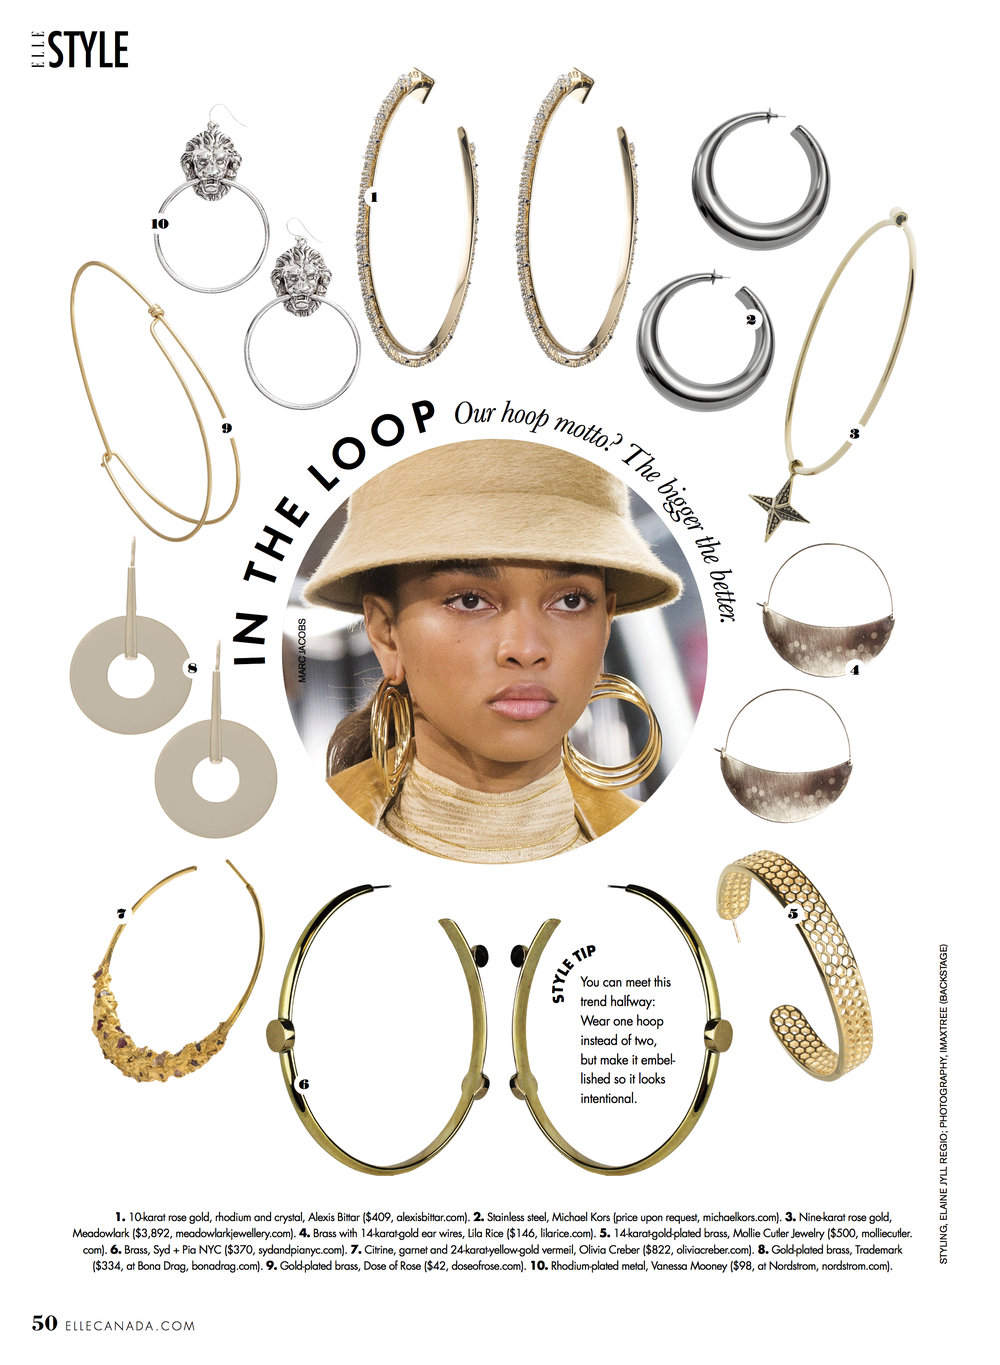 ELLE CANADA  SEPTEMBER 2017 |  HONEYCOMB HOOPS